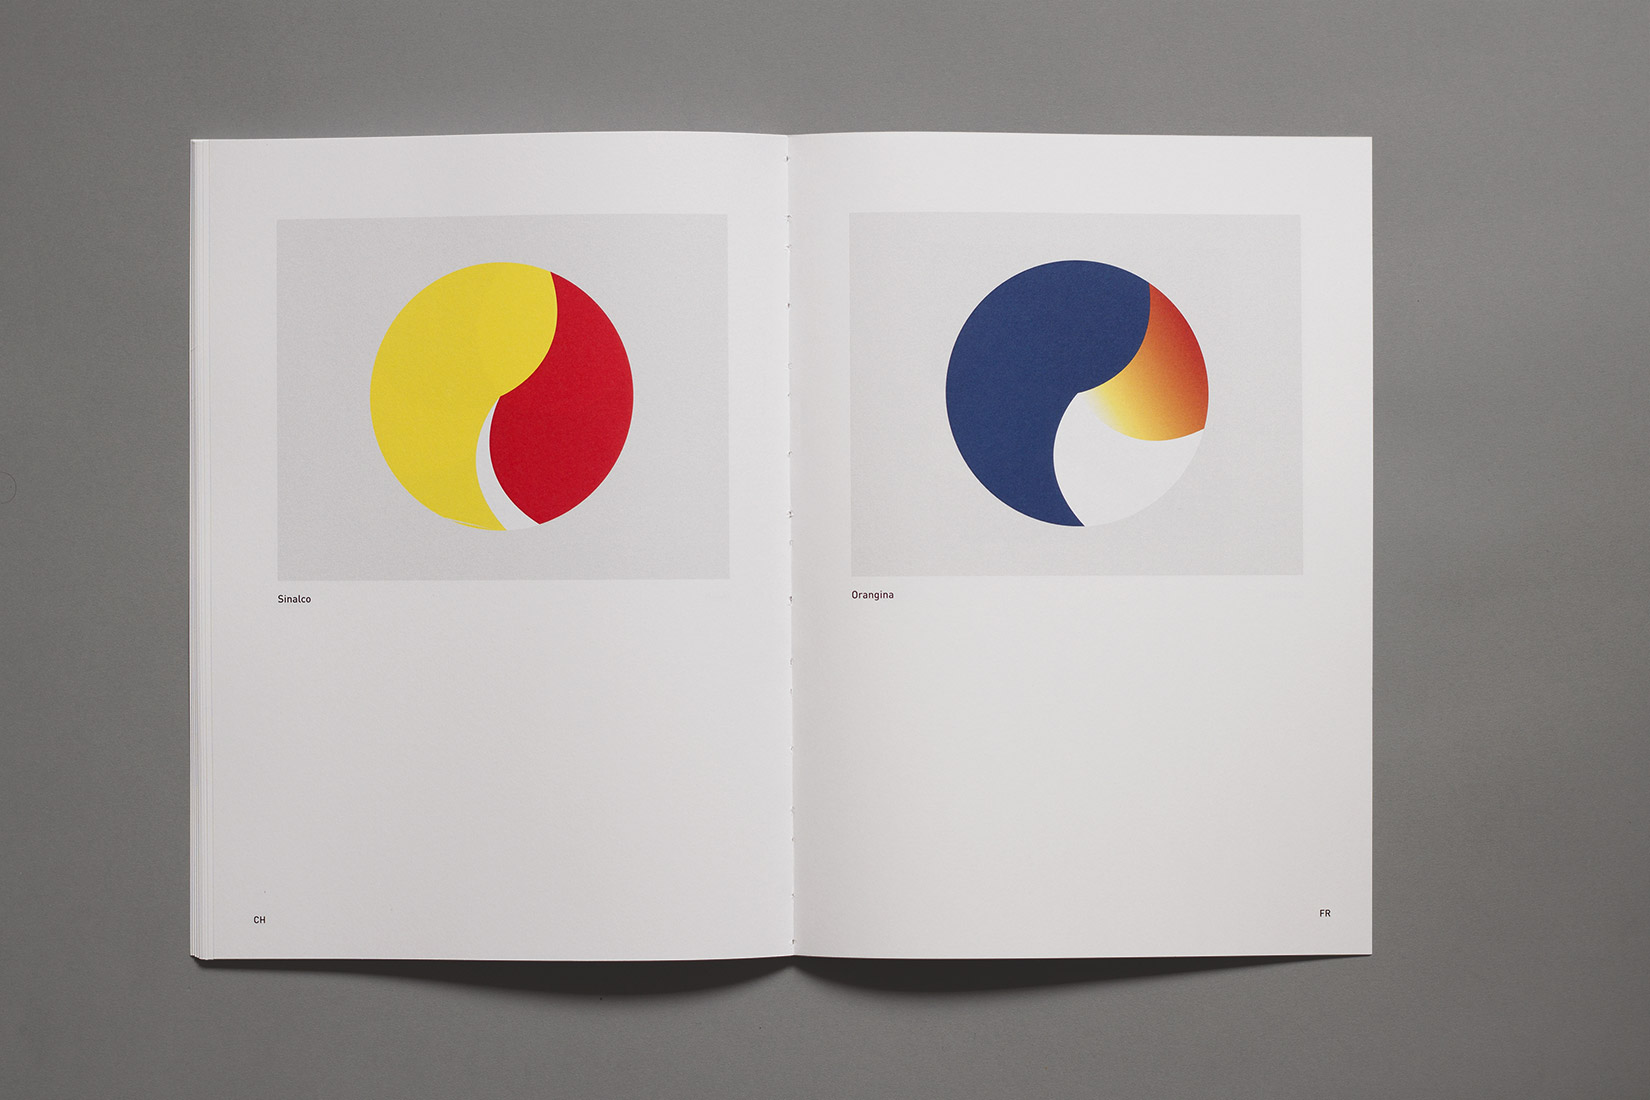 Les Verrières, diploma, book, graphic design, Switzerland, France, graphical comparison, datavisualization, drinks, Sinalco, Orangina, circles, surface, color proportion